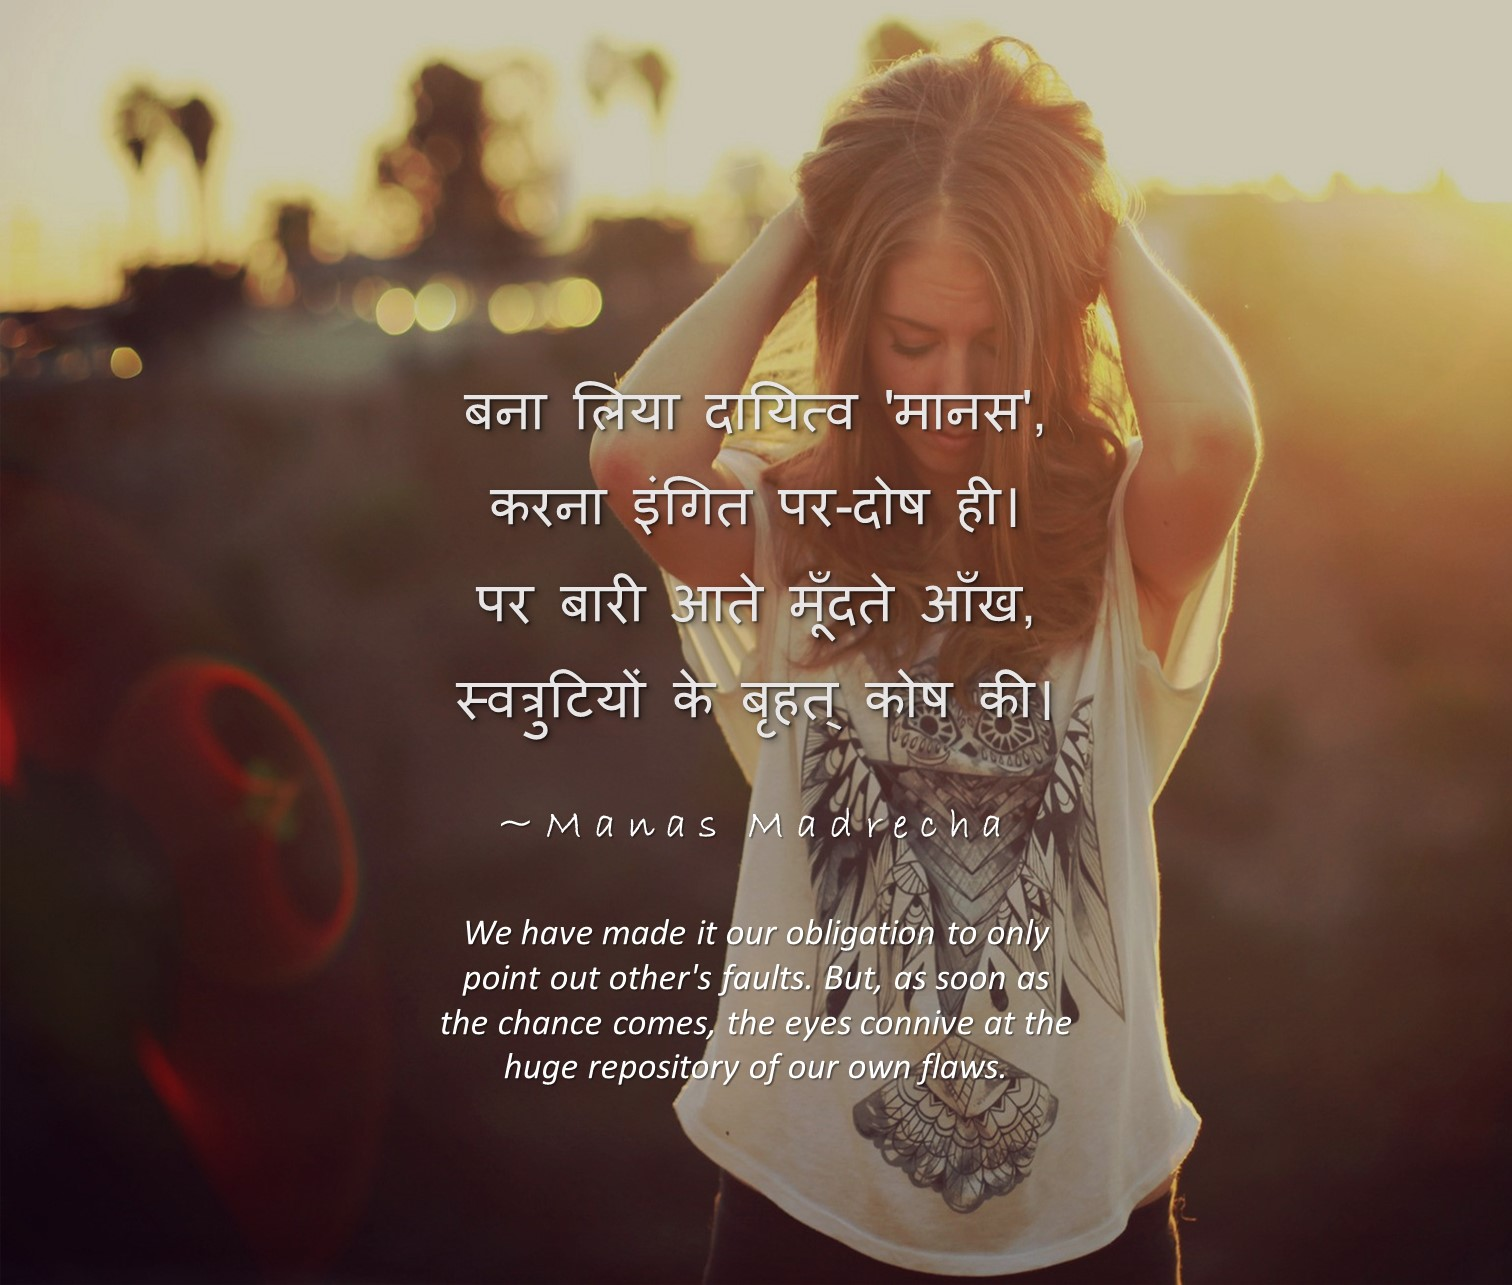 girl hands up, girl in sunshine, girl mood wallpaper, girl touching her hair, girl thinking, alone girl sunshine tumblr, sad girl thinking, happy girl thinking, girl bokeh effect, hot girl in sunshine, Manas Madrecha, Manas Madrecha blog, simplifying universe, hindi poem on self, hindi quotes, hindi shayari, inspirational poem, inspirational quotes, motivational quotes, first talk about yourself, pehle khud ki baat karo,